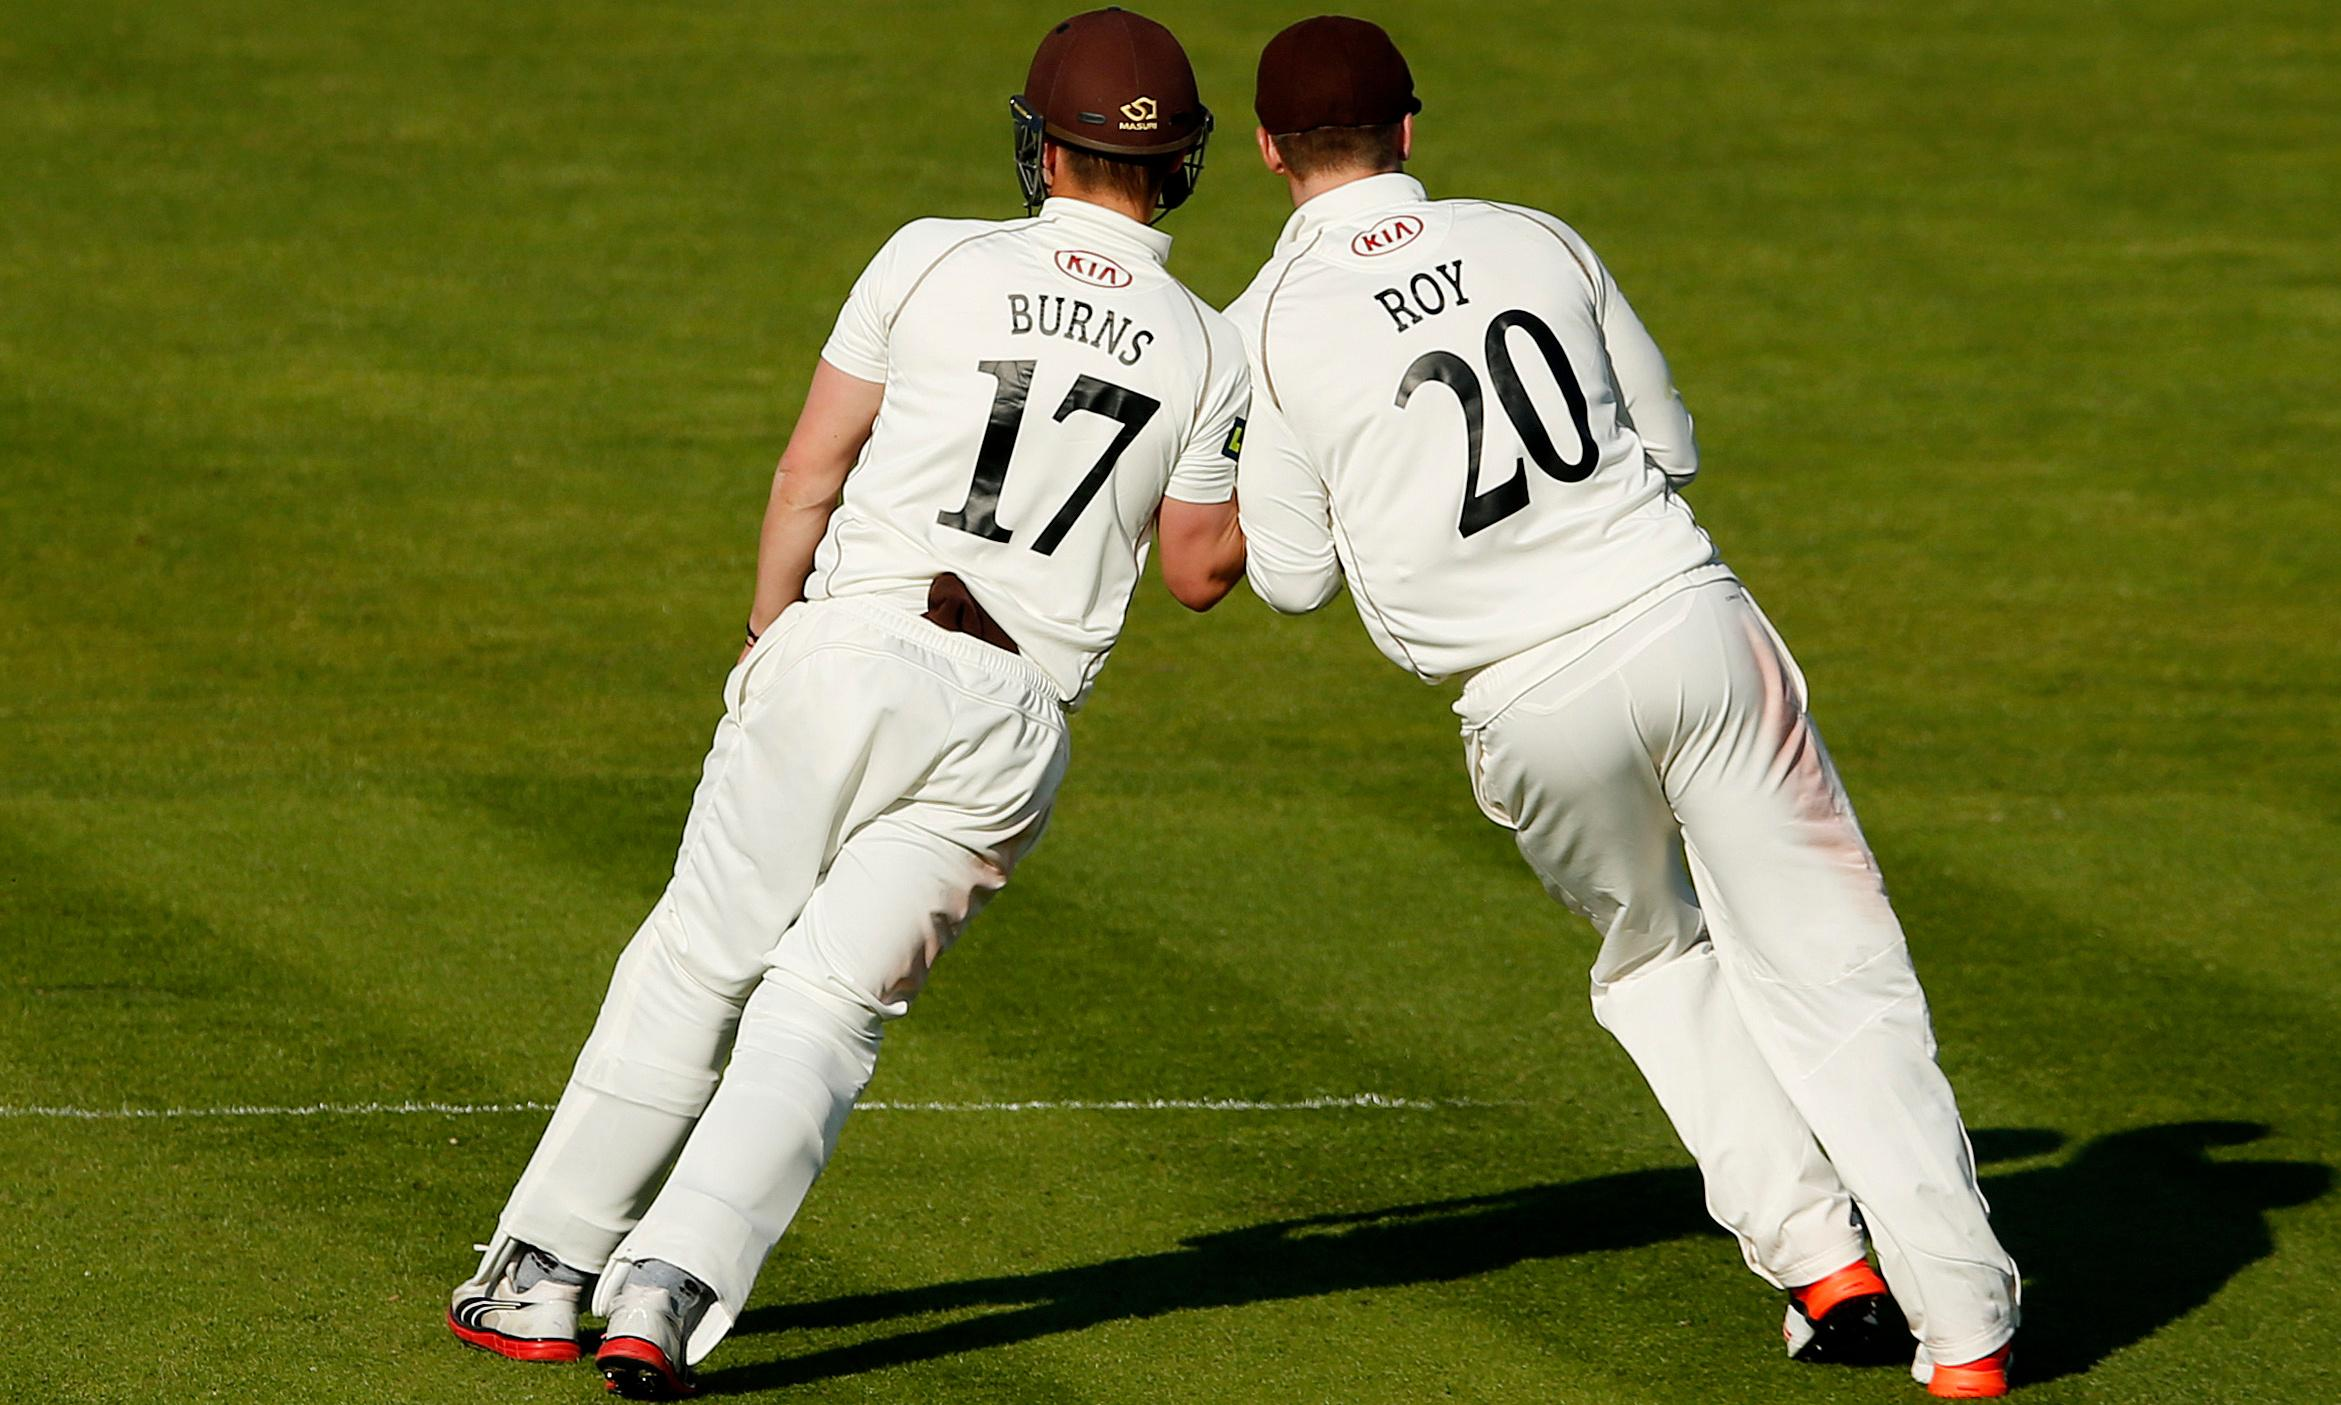 Old schoolfriends Rory Burns and Jason Roy relish a Test together